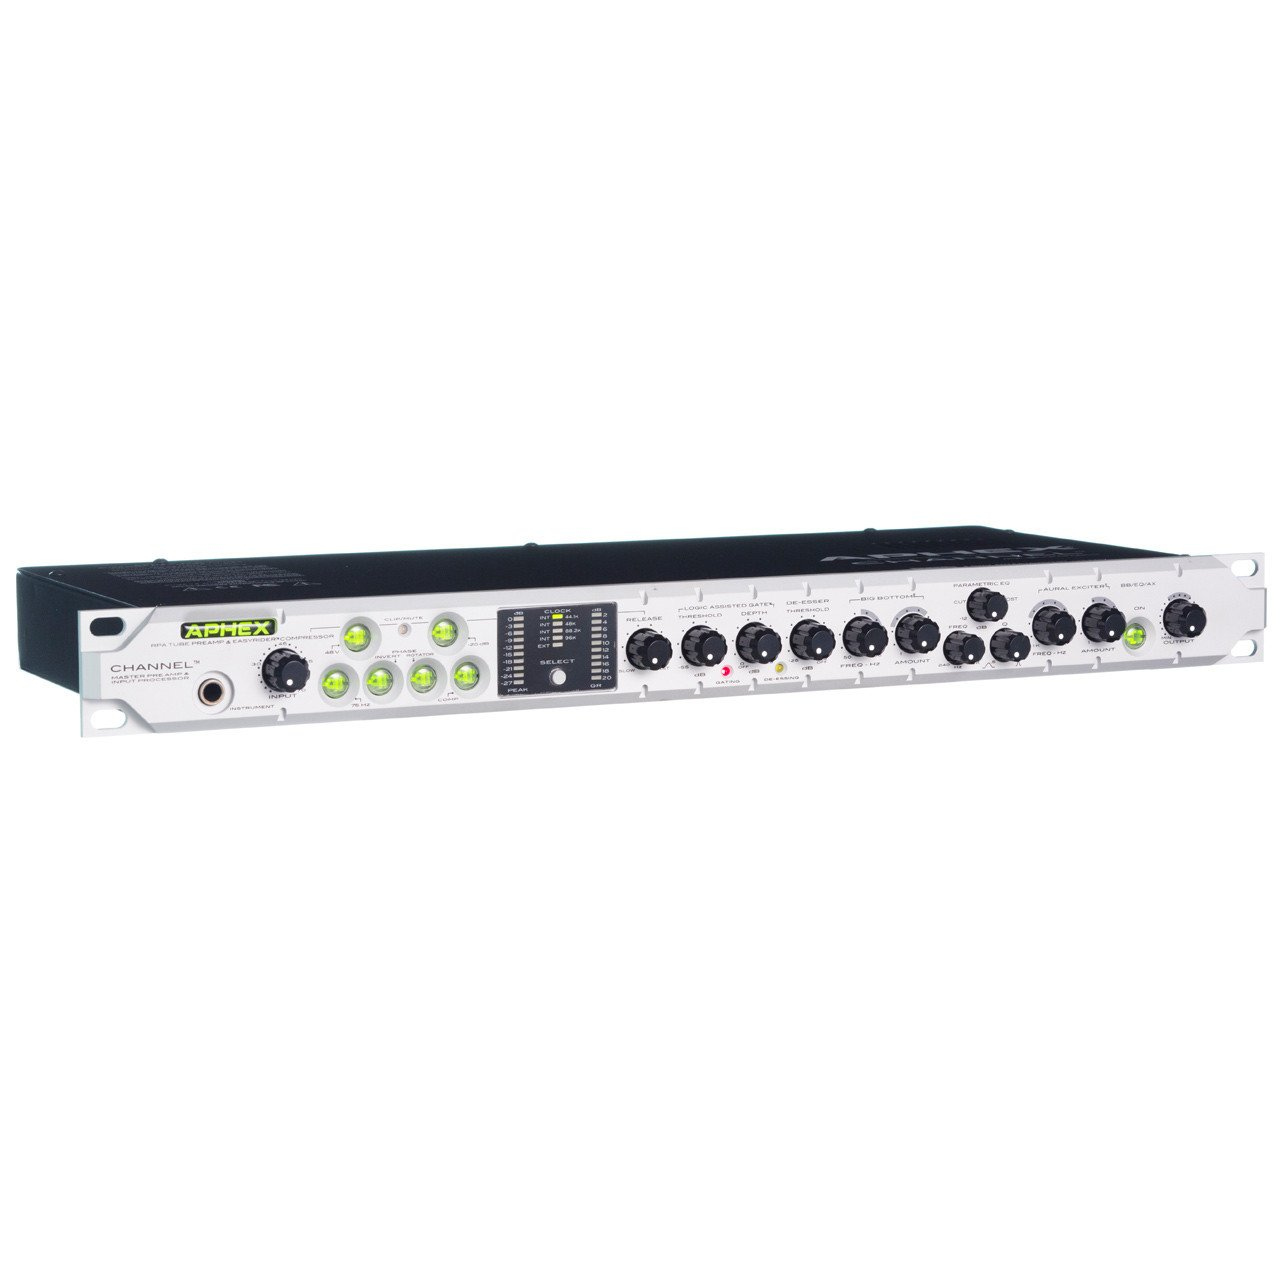 Preamps/Channel Strips - Aphex Channel - Master Preamp & Input Processor